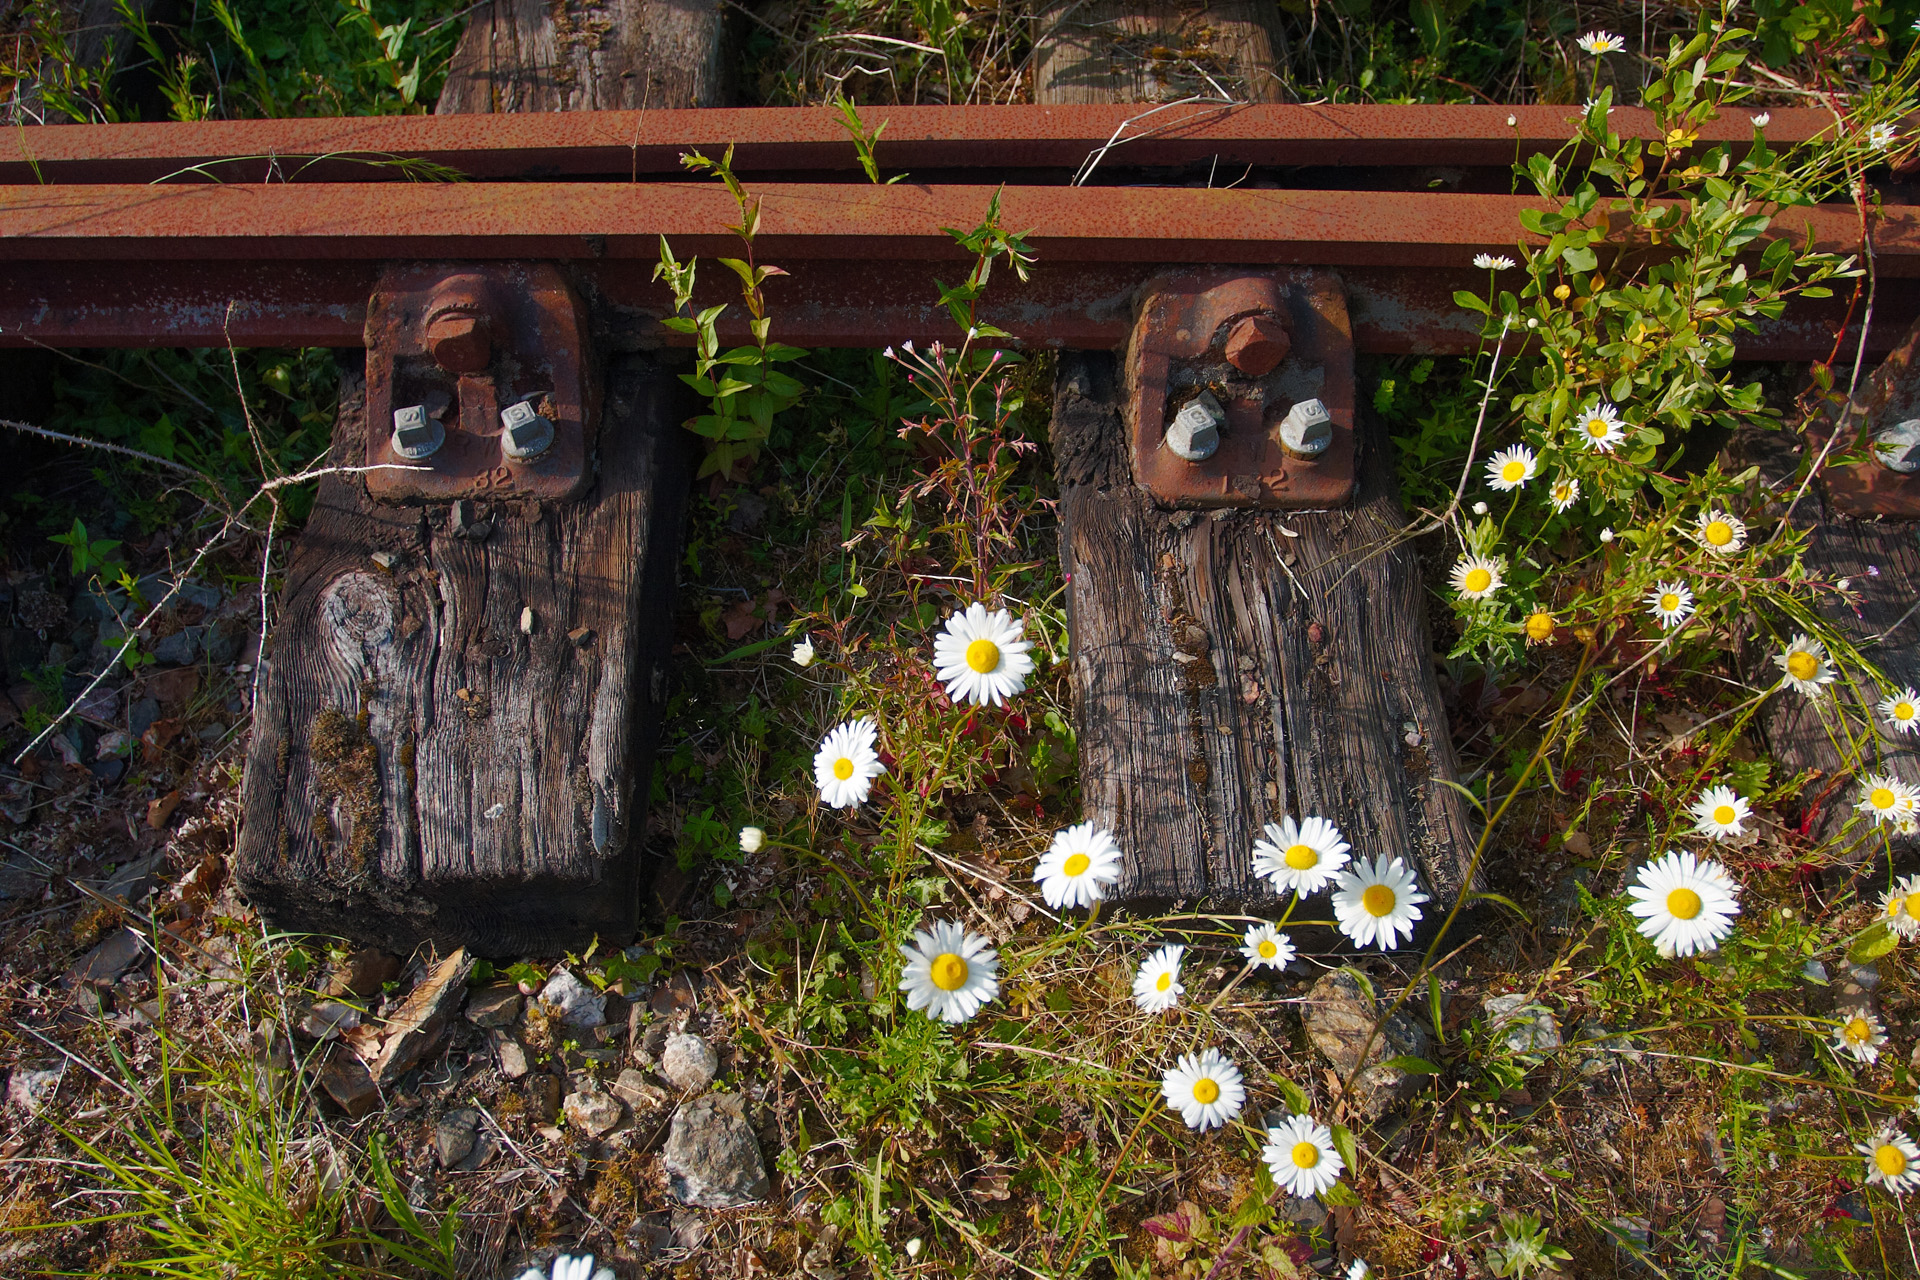 Railway Sleepers and Rusty Rails among the Daisies